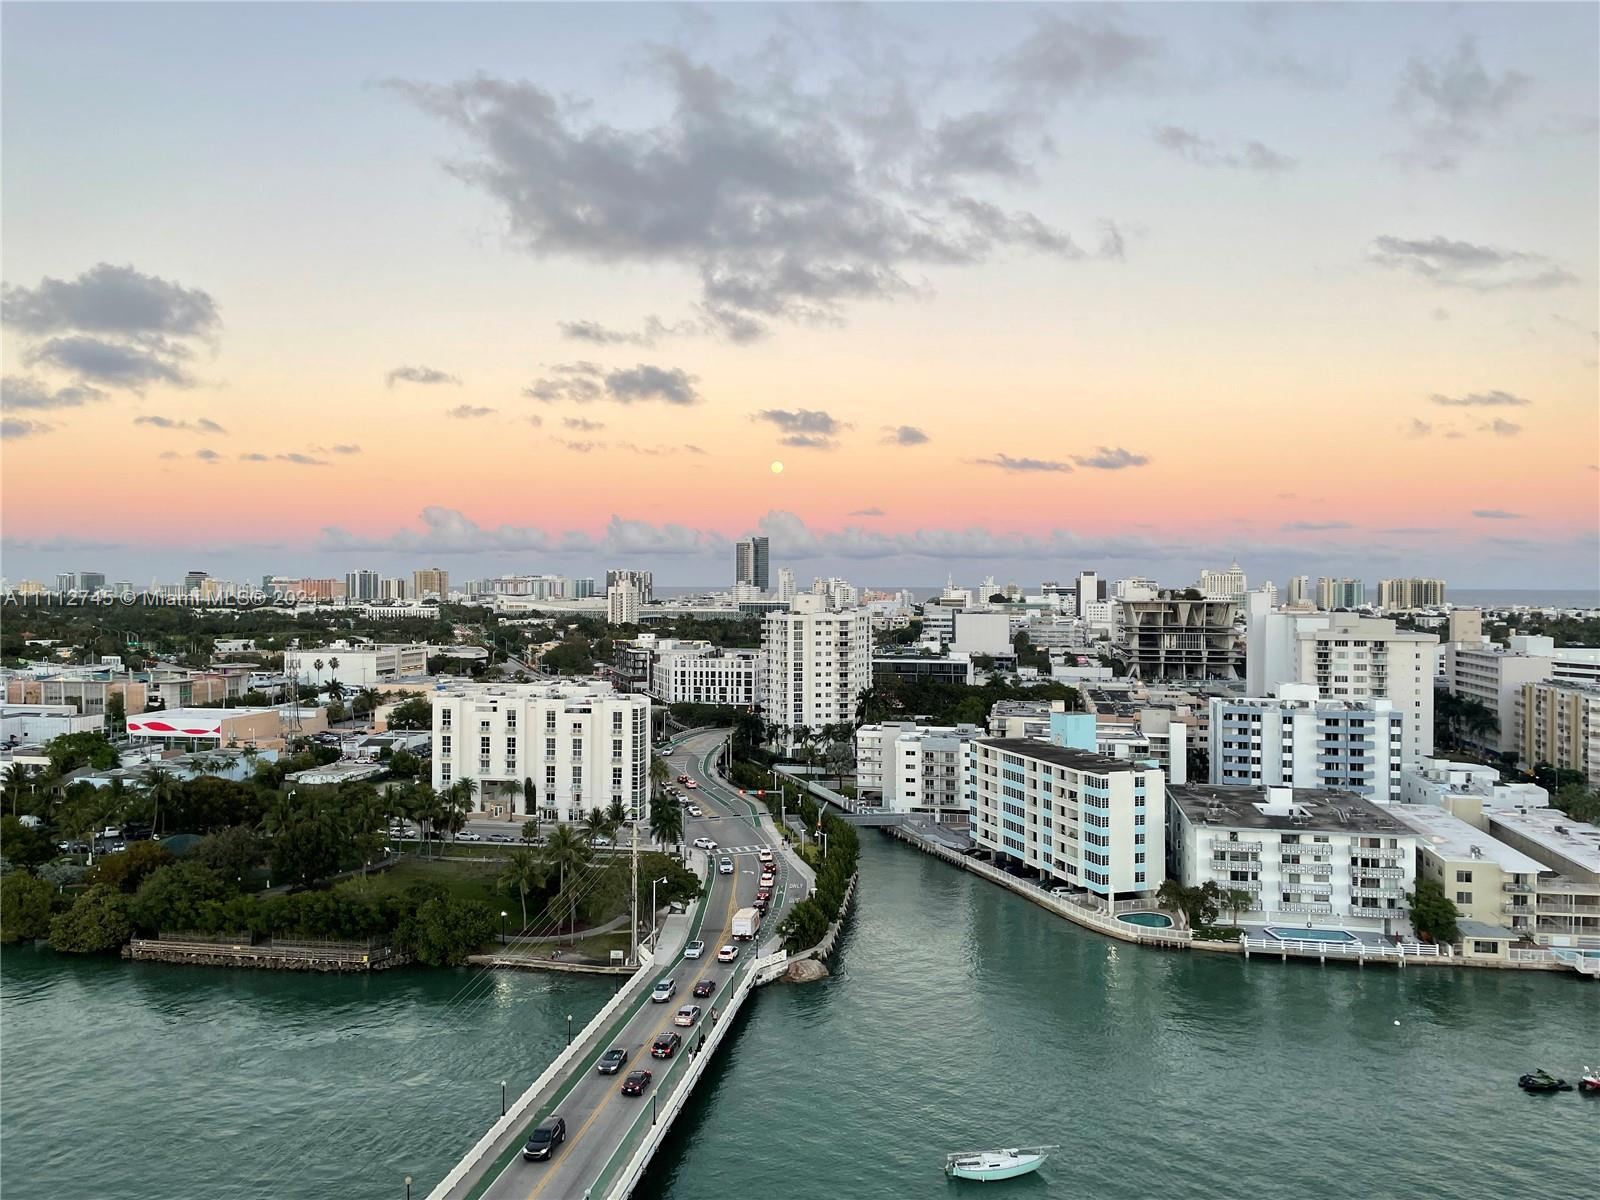 Step outside to watch the sunrise and sunset on this breathtaking wrap-around balcony with views of Miami Beach's marina, bay, and ocean. This luxurious 3BD/3BA is located on the highly exclusive Venetian Islands. Located in a boutique building with five-star amenities, including a state-of-the-art fitness center, golf cage, tennis court, infinity pool w/ towel service, valet, and concierge services. This gorgeous condo is sold Turnkey with high-end furniture, exclusive art pieces, and accessories. The Grand Venetian provides the perfect private paradise, yet still close to Miami's top restaurants and shops. Enjoy incredible water views along the Venetian Causeway- the best biking and running route in the area. Living in this gorgeous home will make you feel like vacation is never-ending.